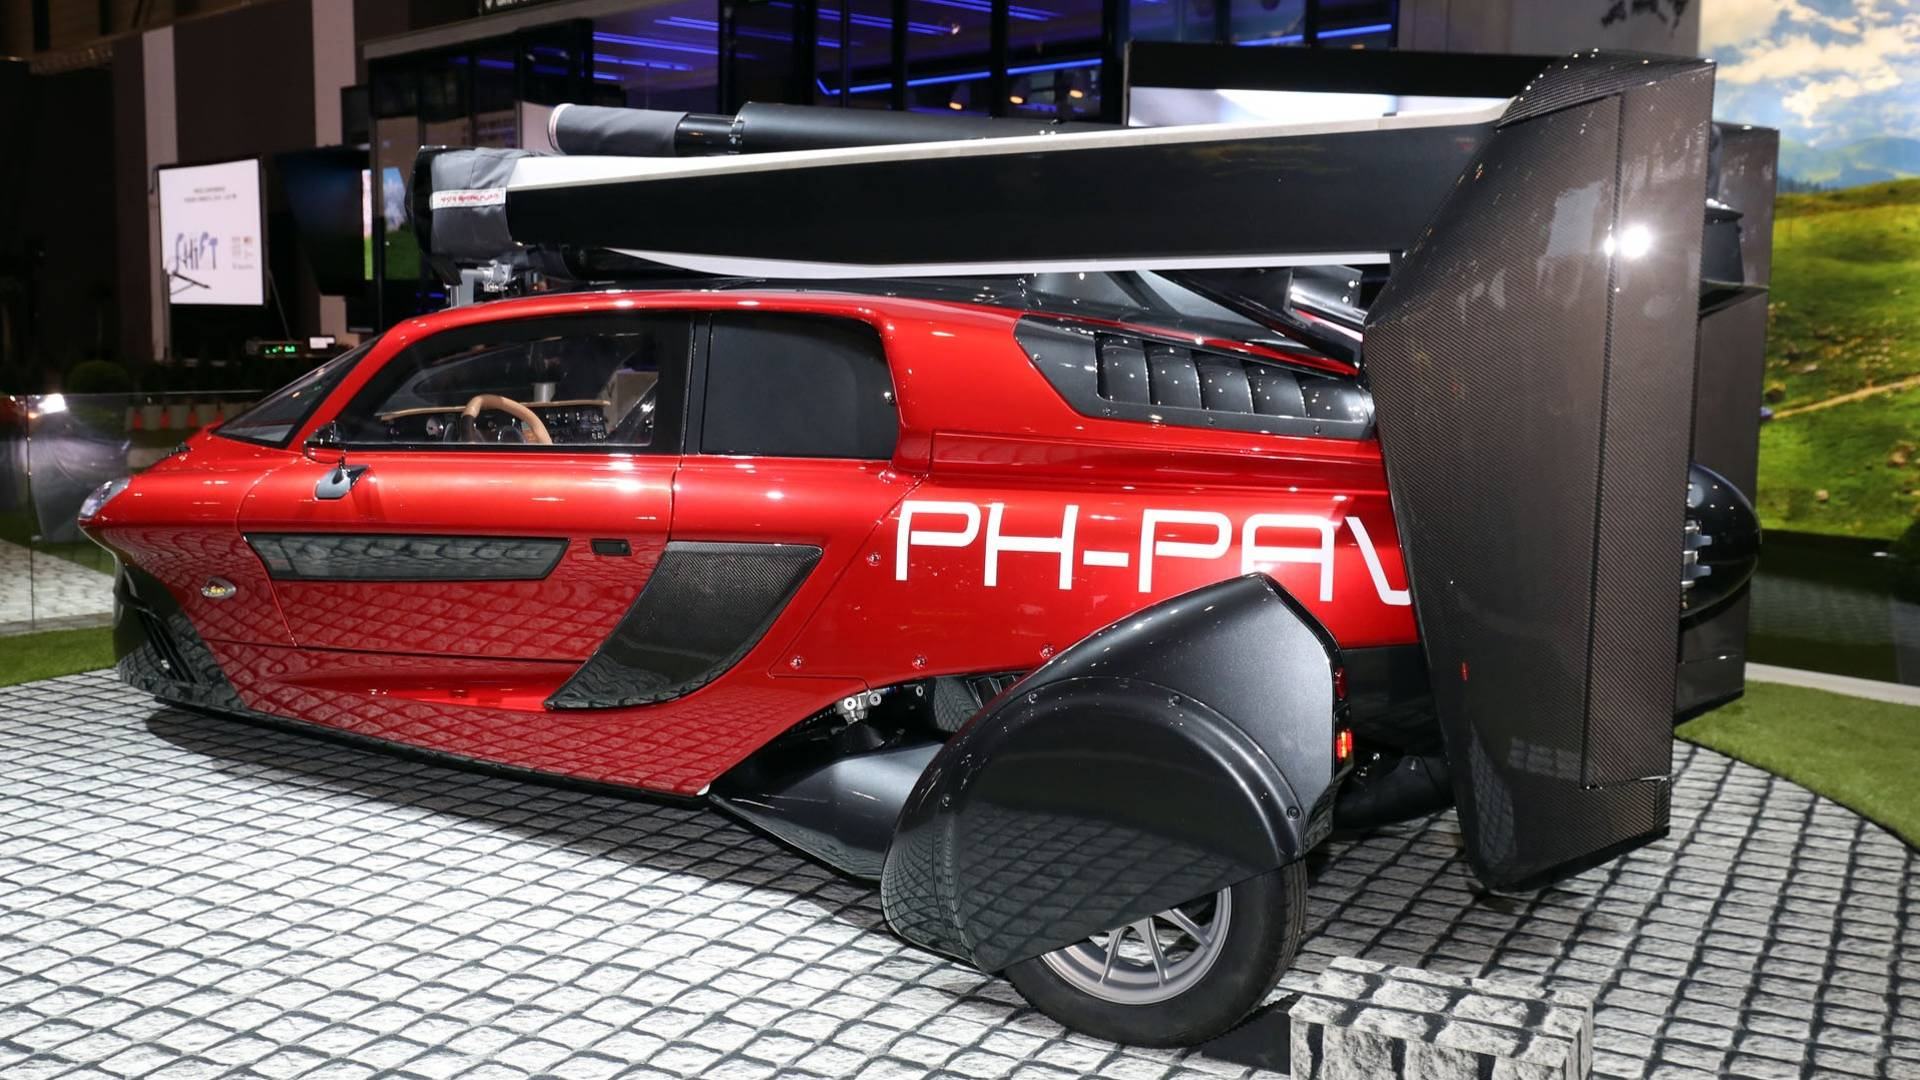 pal-v-liberty-flying-car (2)